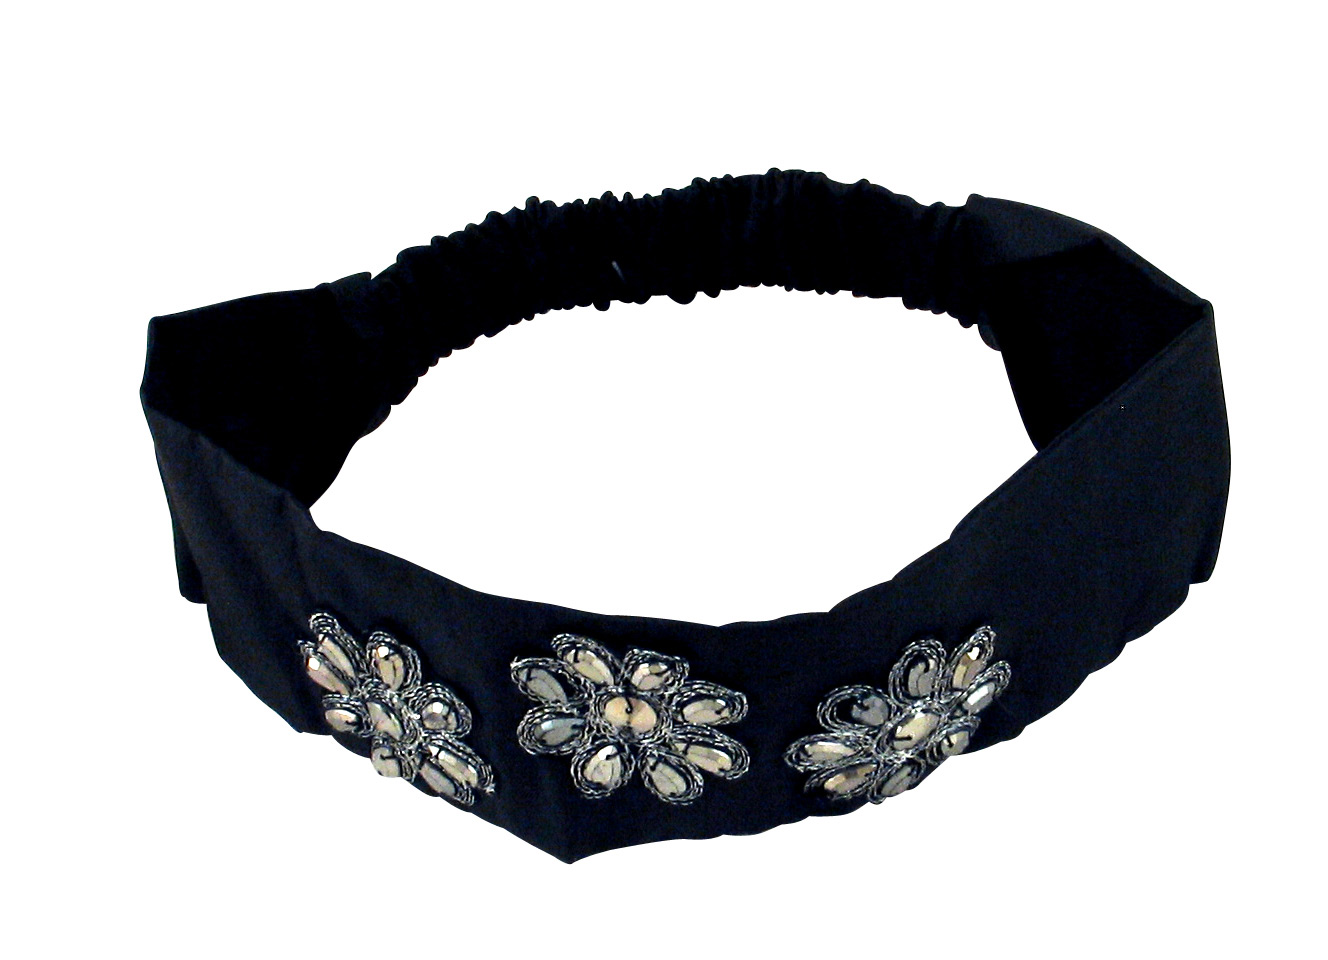 Black Satin Womens Headband with Metallic Beads